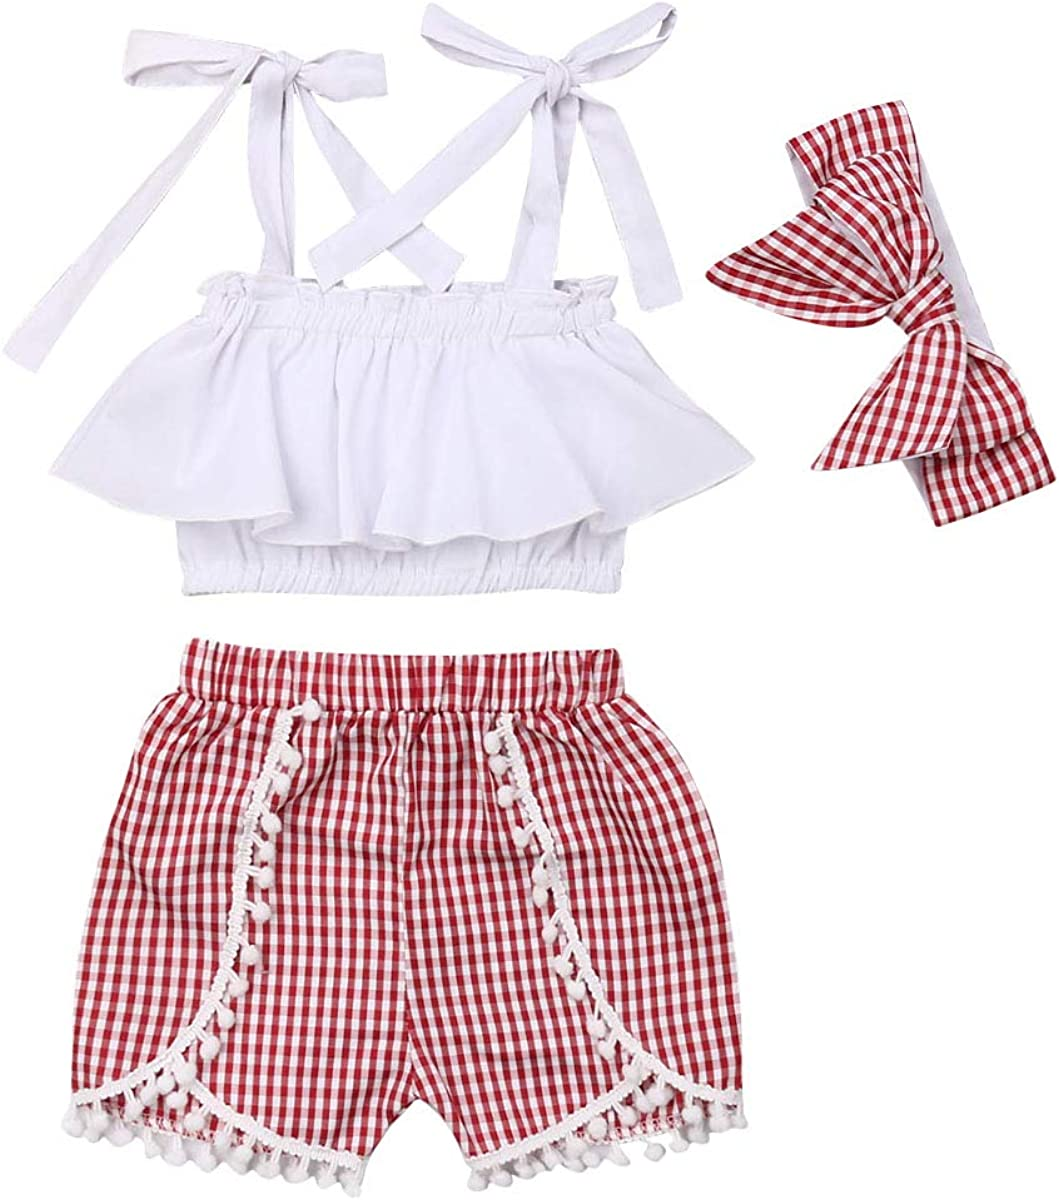 Summer Newborn Infant Baby Girl Clothes Tops Plaid Shorts Overalls 2Pcs Outfit